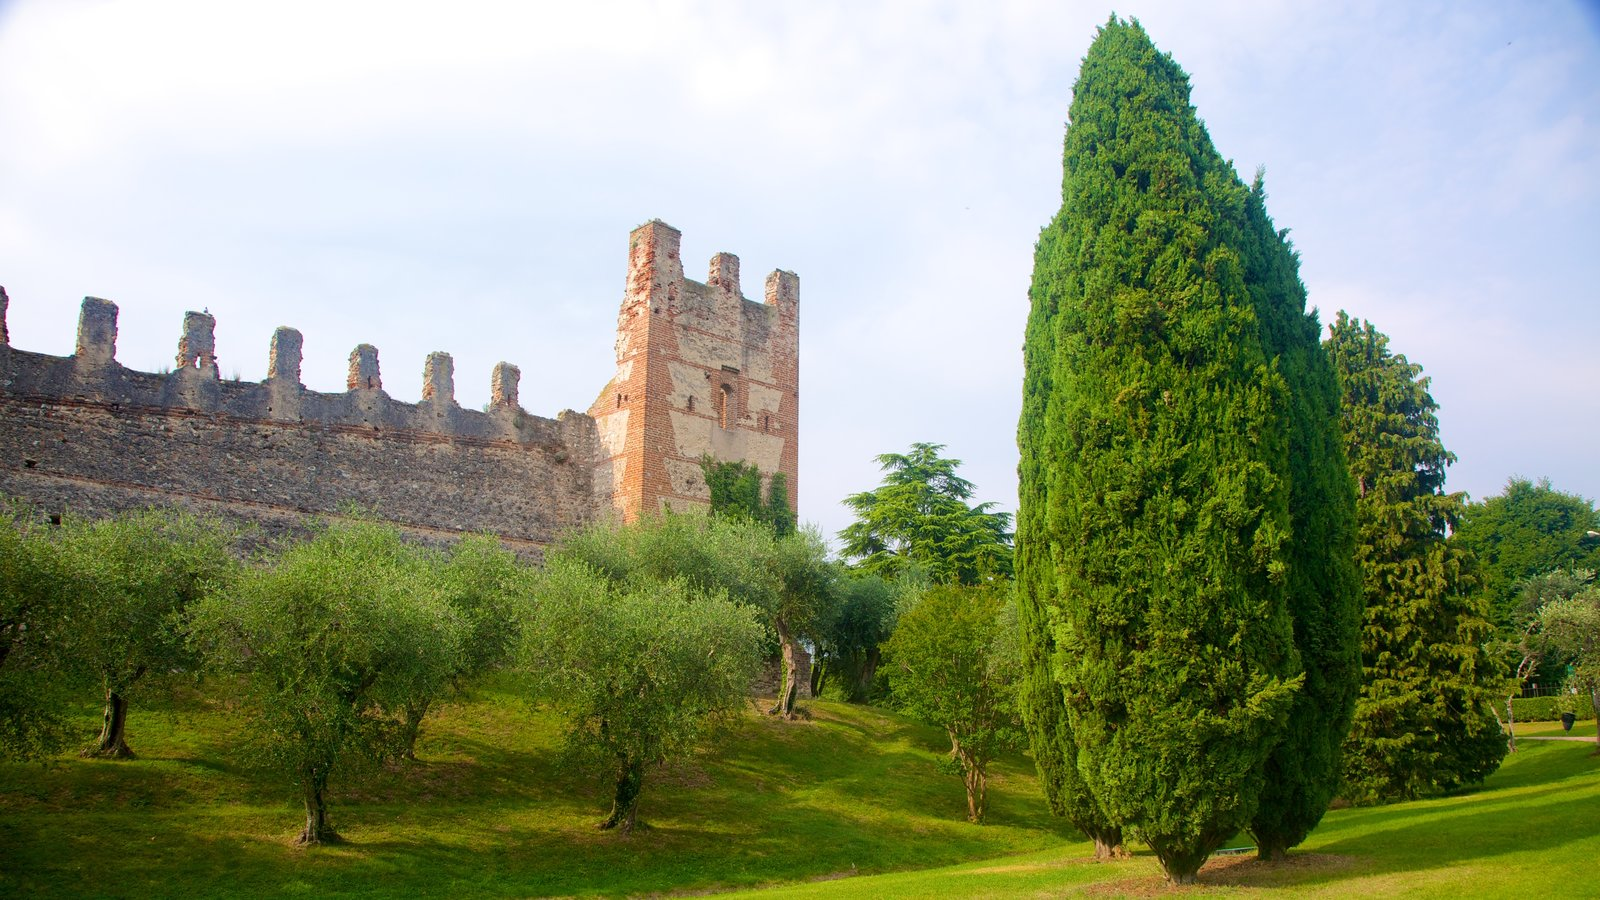 Lazise which includes heritage elements, chateau or palace and a ruin